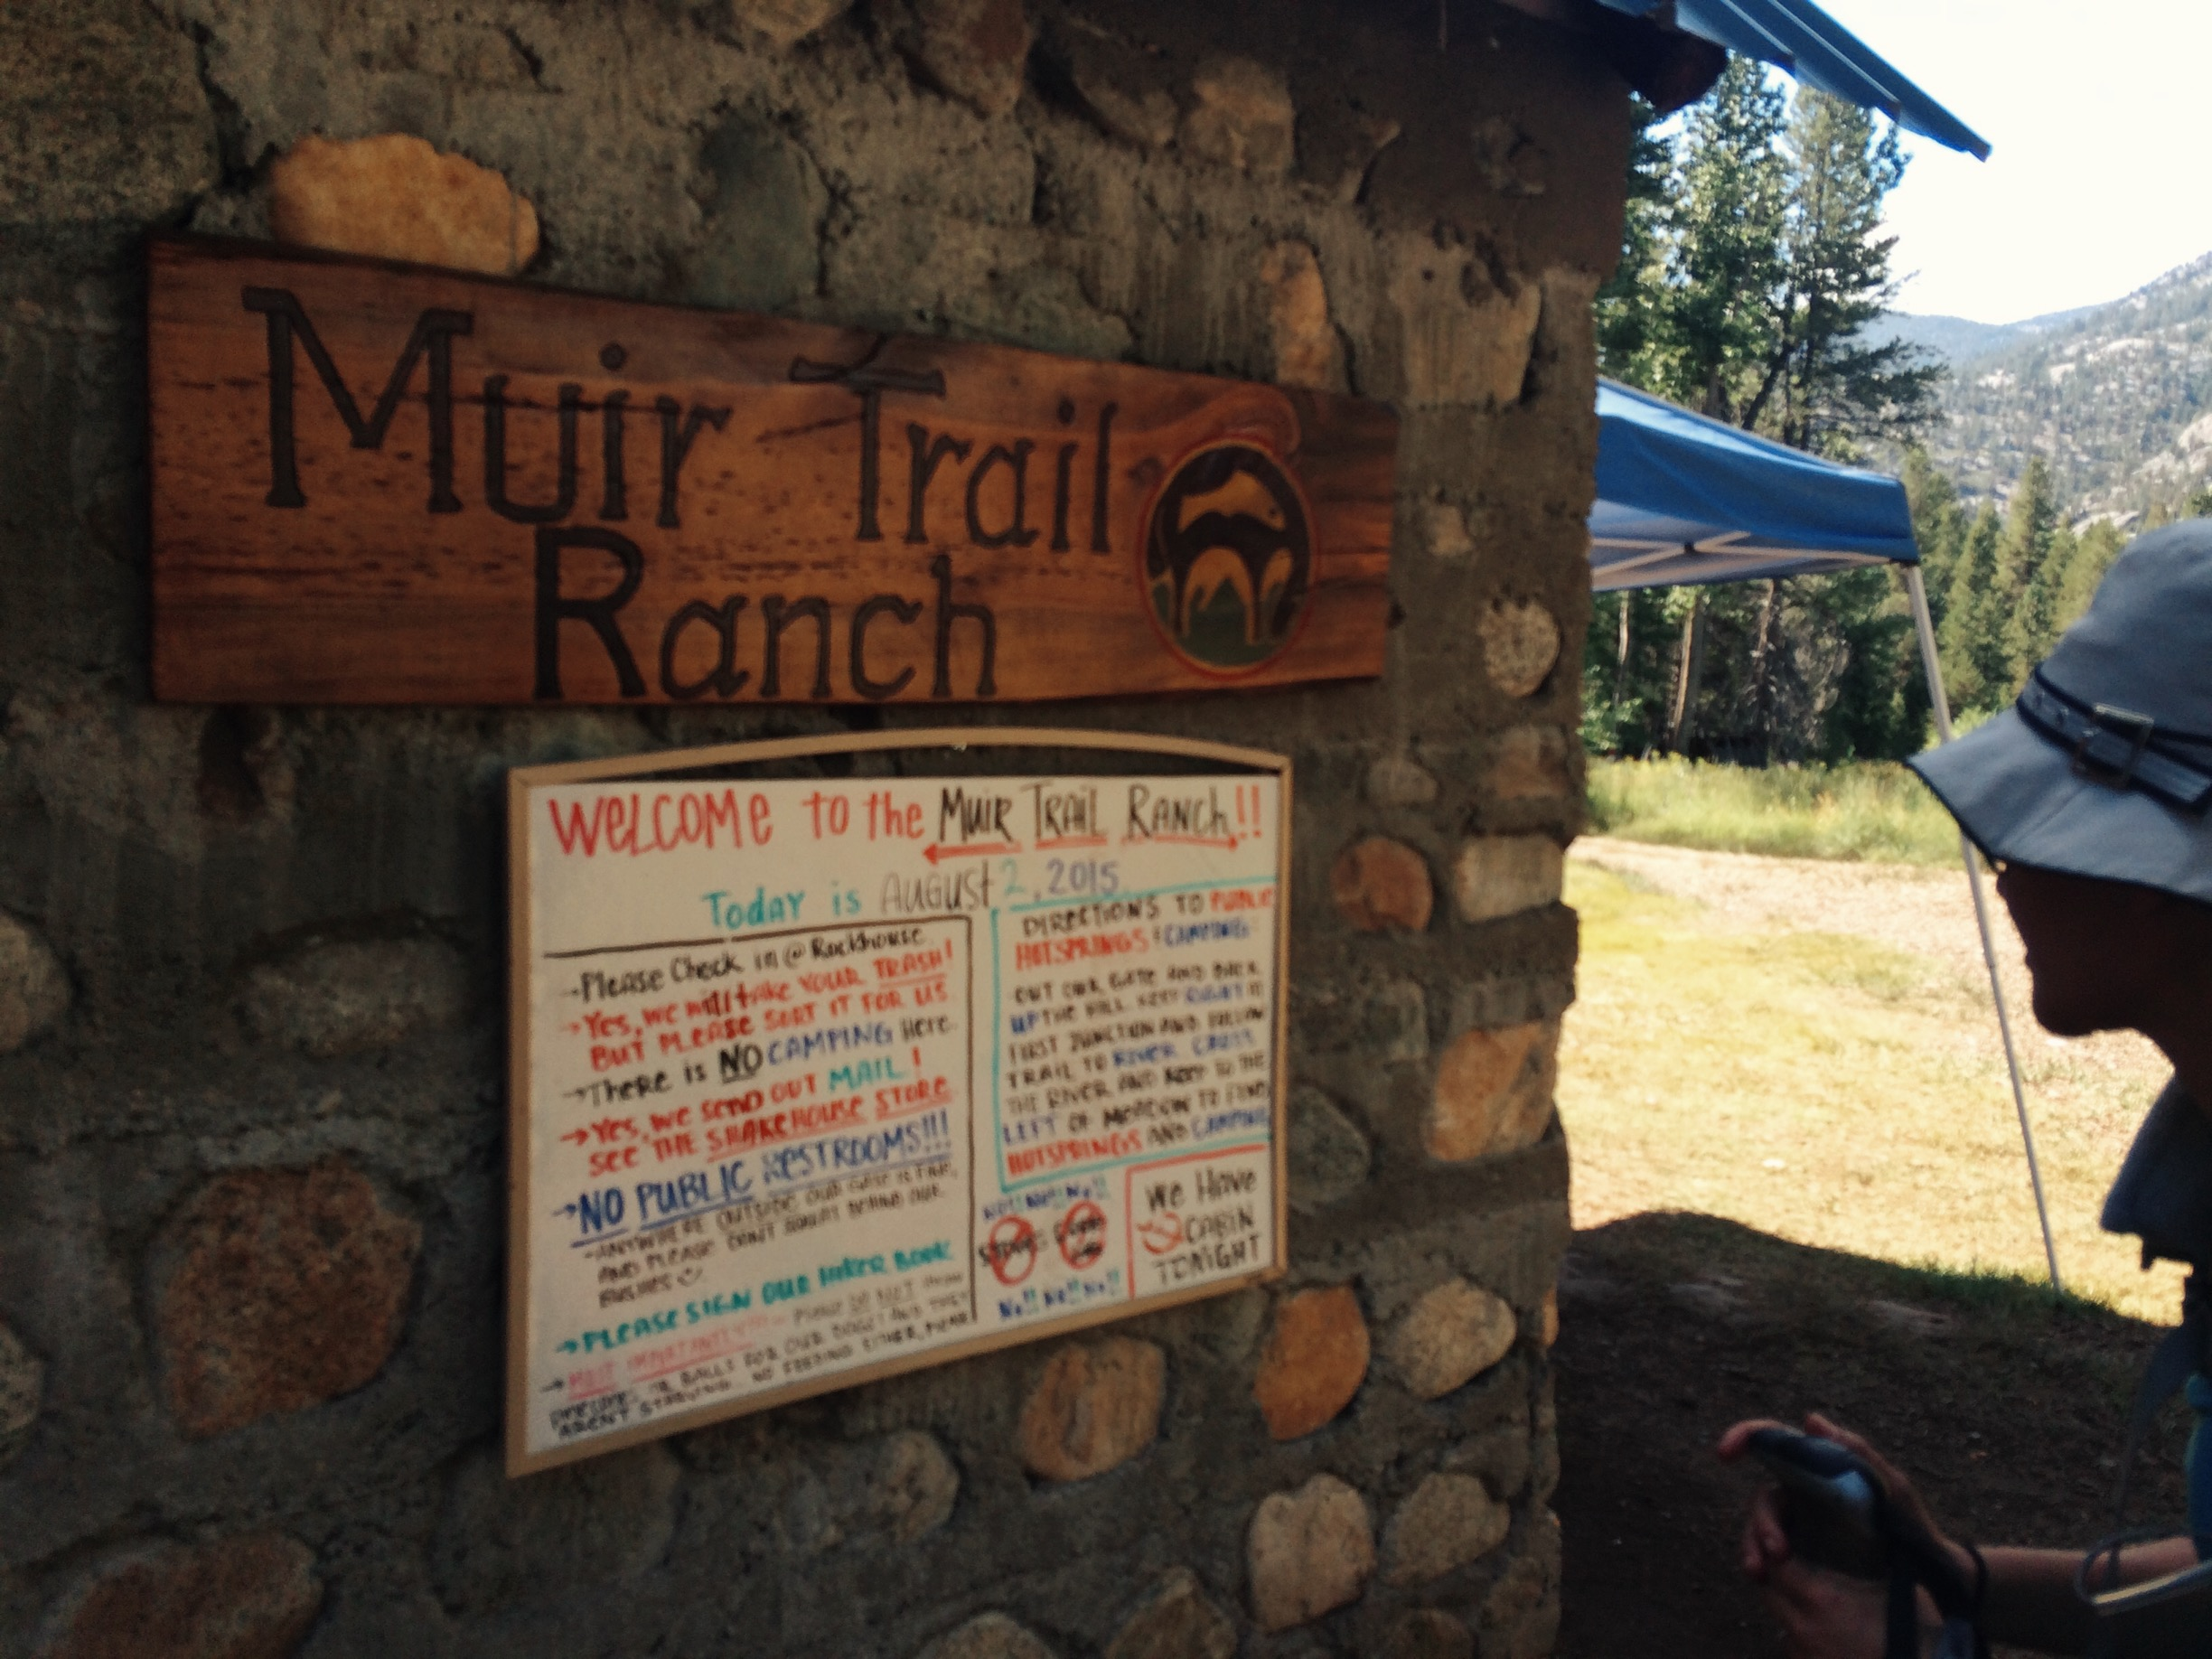 On our longest day on the trail we covered over 15 miles to make it to Muir Trail Ranch to pick up our resupply bucket before they closed for the day.